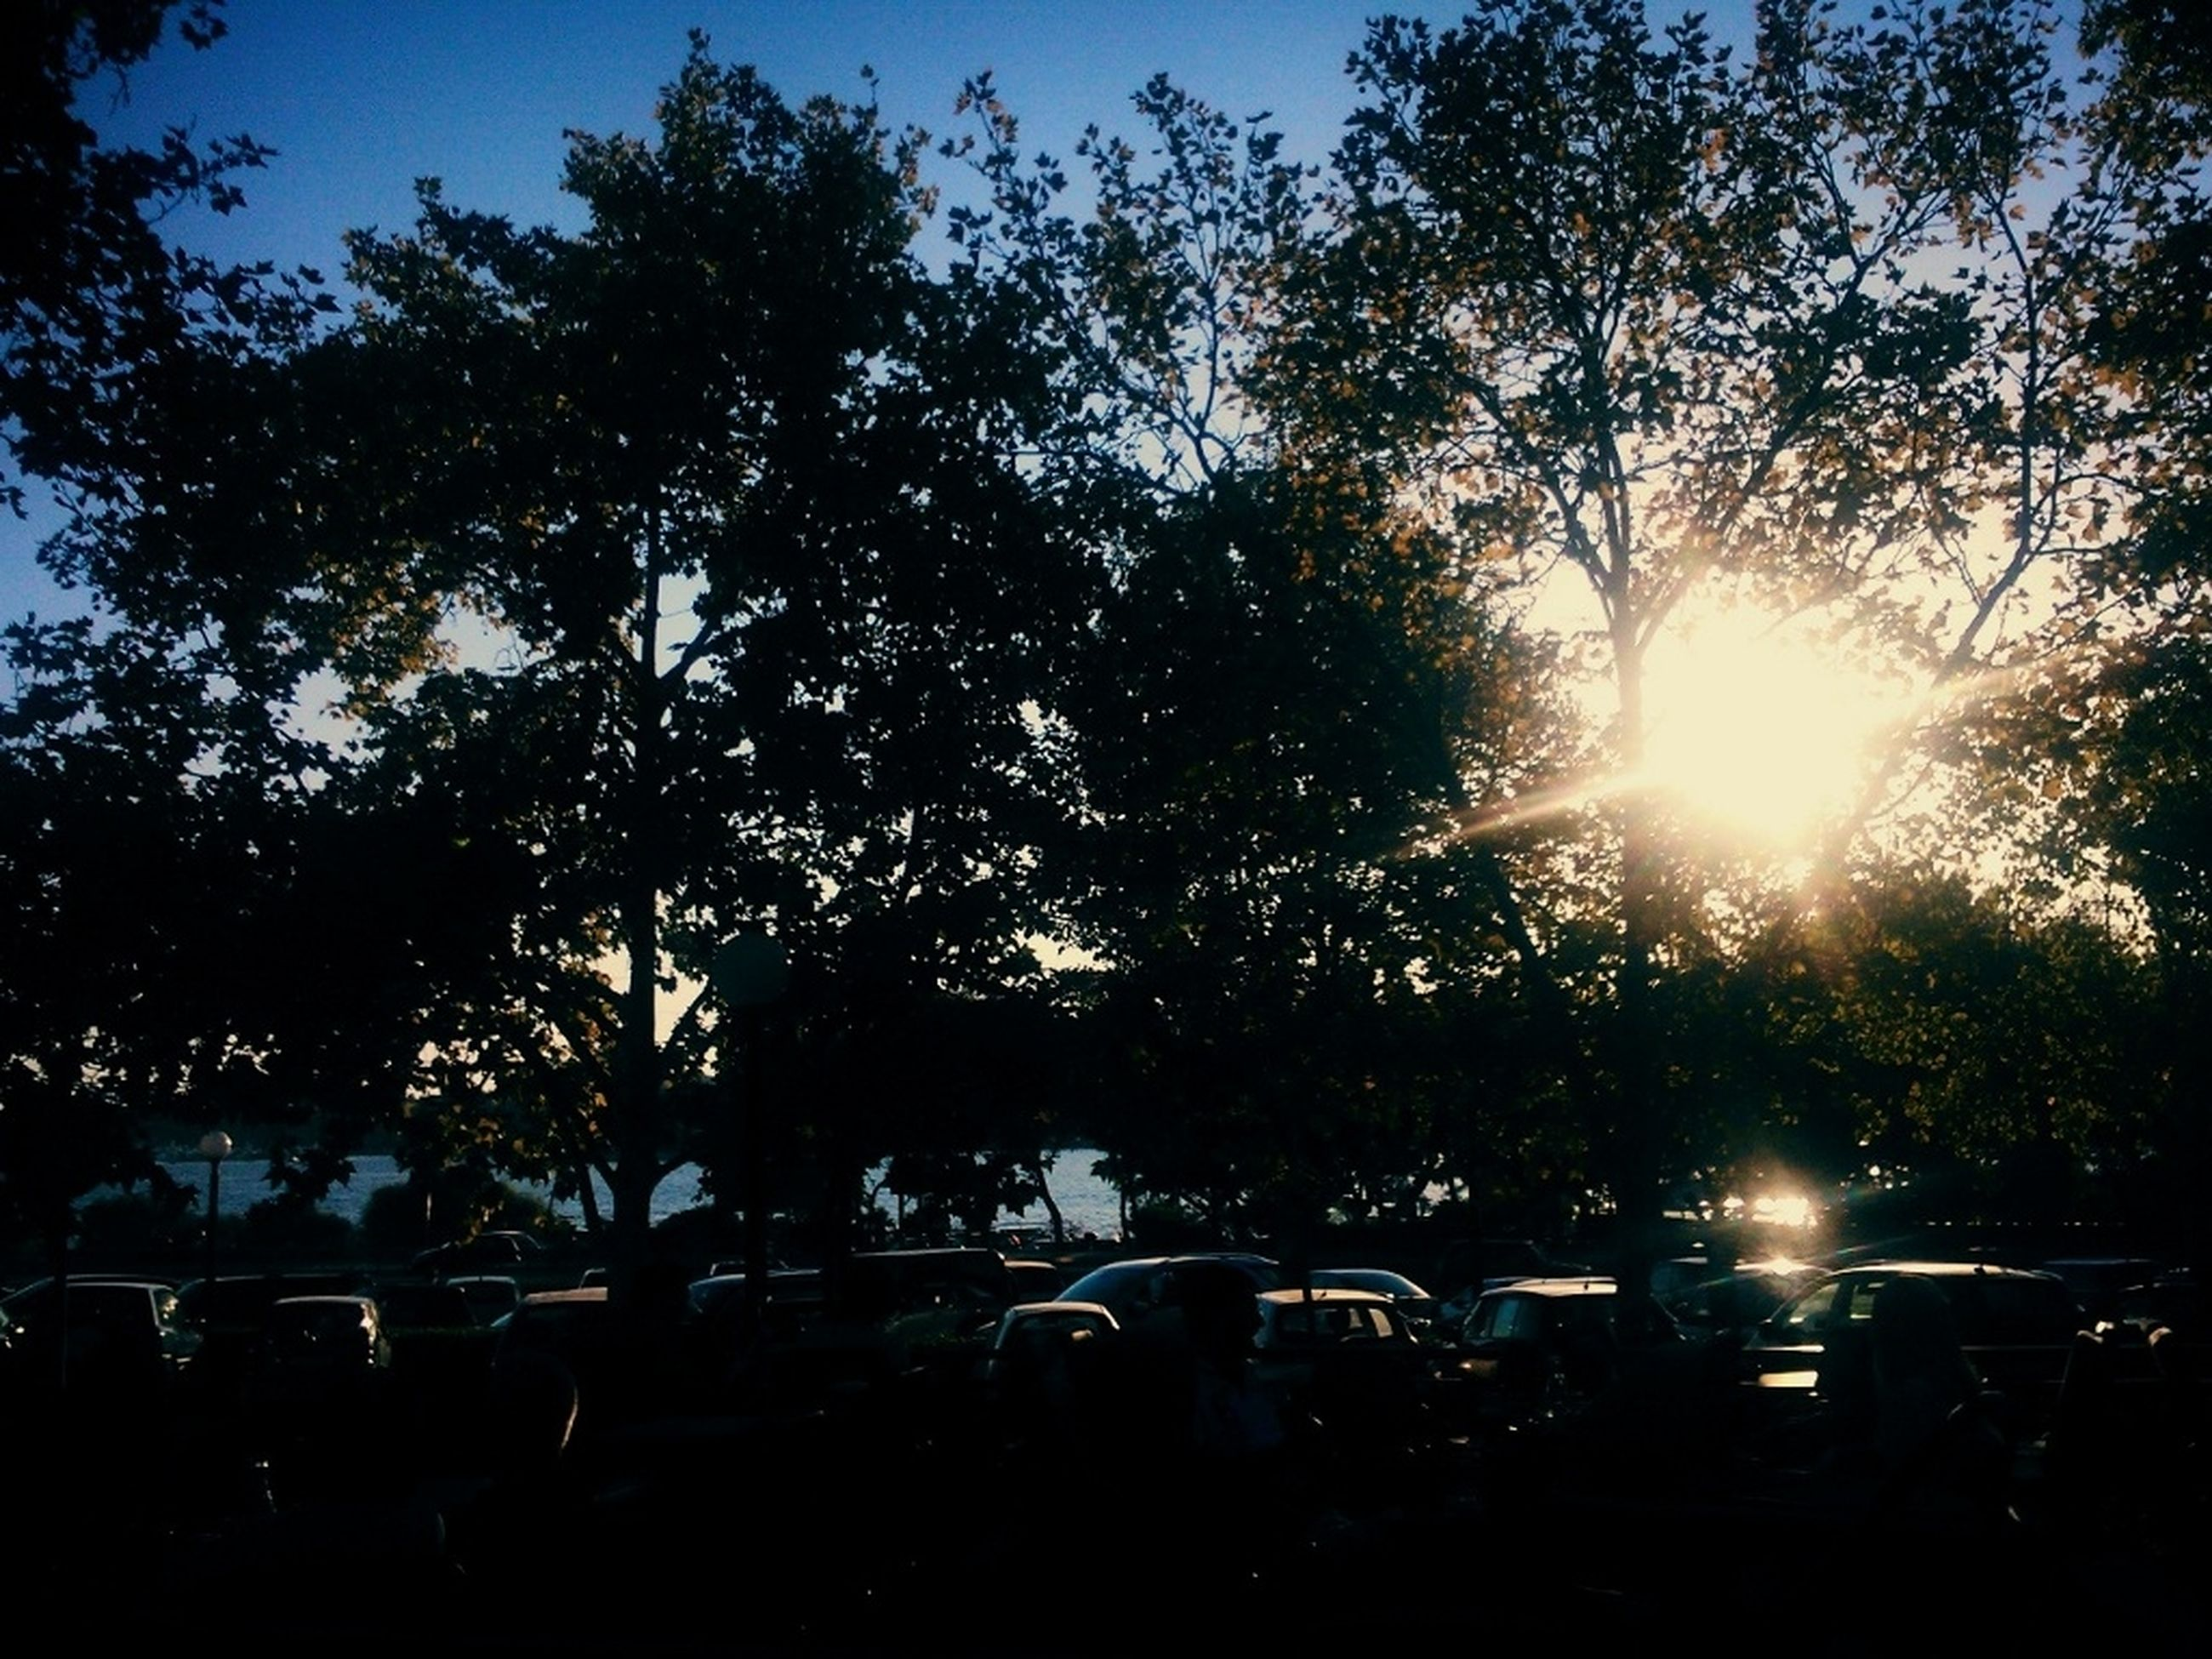 tree, silhouette, sunlight, transportation, growth, land vehicle, mode of transport, sky, nature, car, clear sky, outdoors, day, no people, lens flare, sun, park - man made space, sunbeam, tranquility, beauty in nature